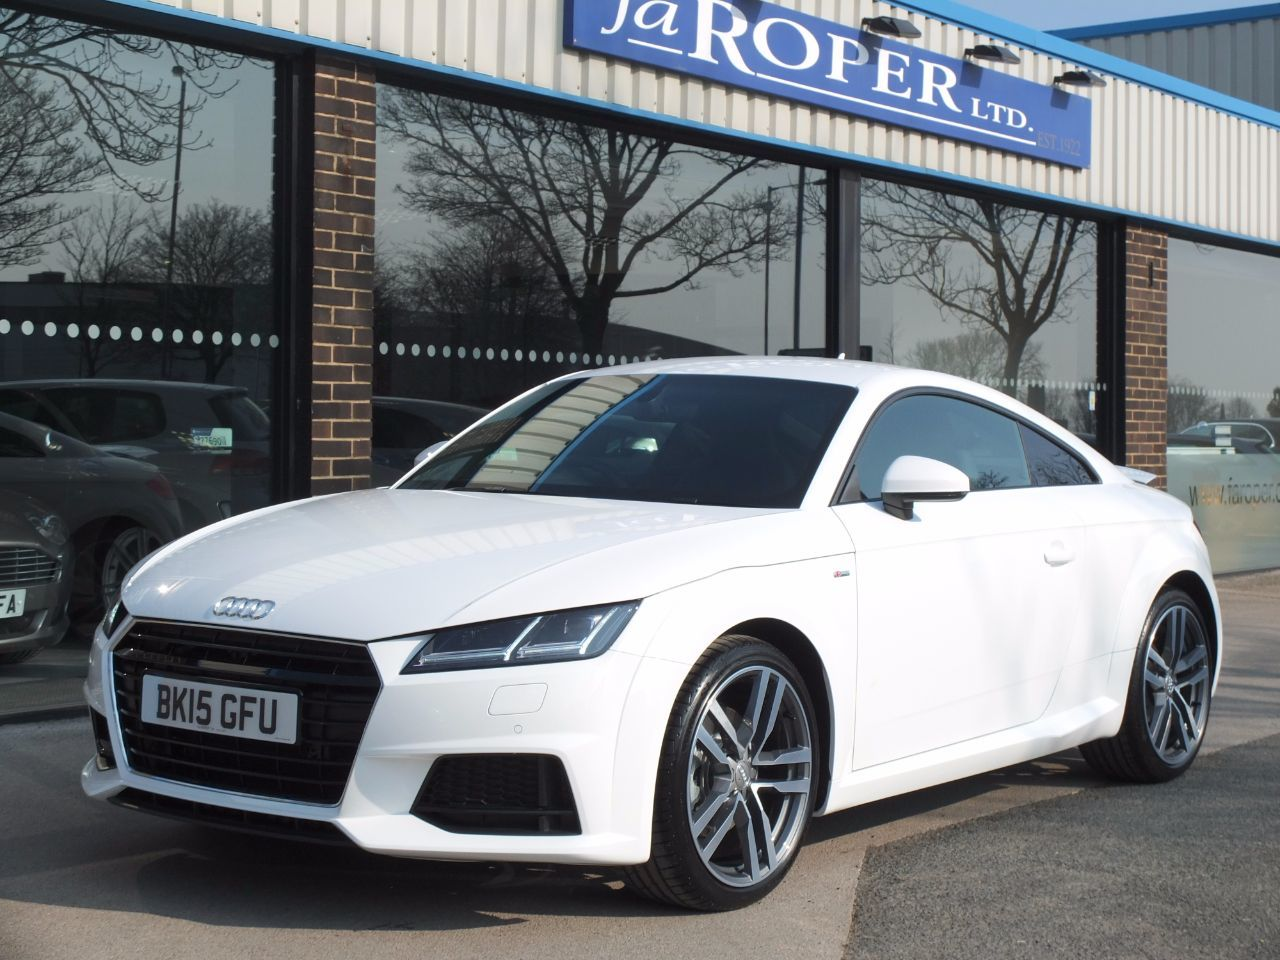 Audi TT 2.0 TDI ultra S Line Coupe 184ps Coupe Diesel Ibis WhiteAudi TT 2.0 TDI ultra S Line Coupe 184ps Coupe Diesel Ibis White at fa Roper Ltd Bradford